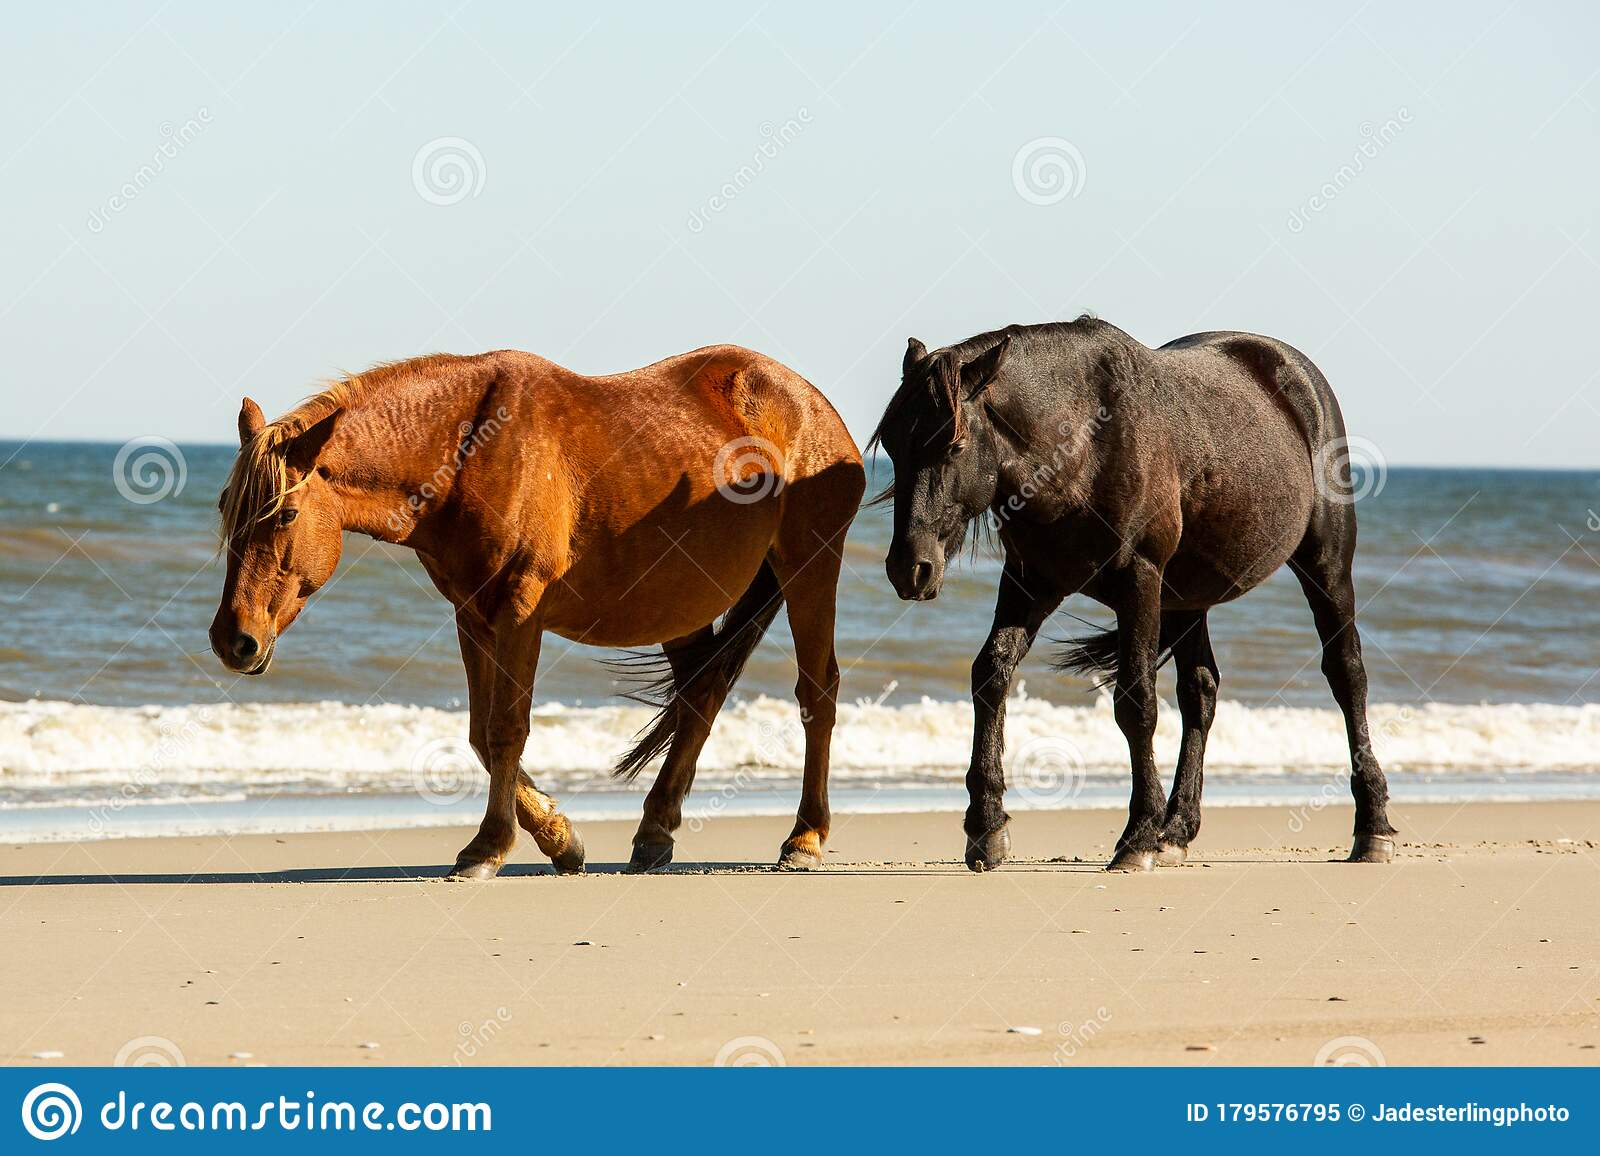 A Wild Black Horse Walking Slightly Behind A Wild Brown Horse On The Beach With Low Breaking Waves At Corolla North Carolina Stock Image Image Of Corolla Front 179576795